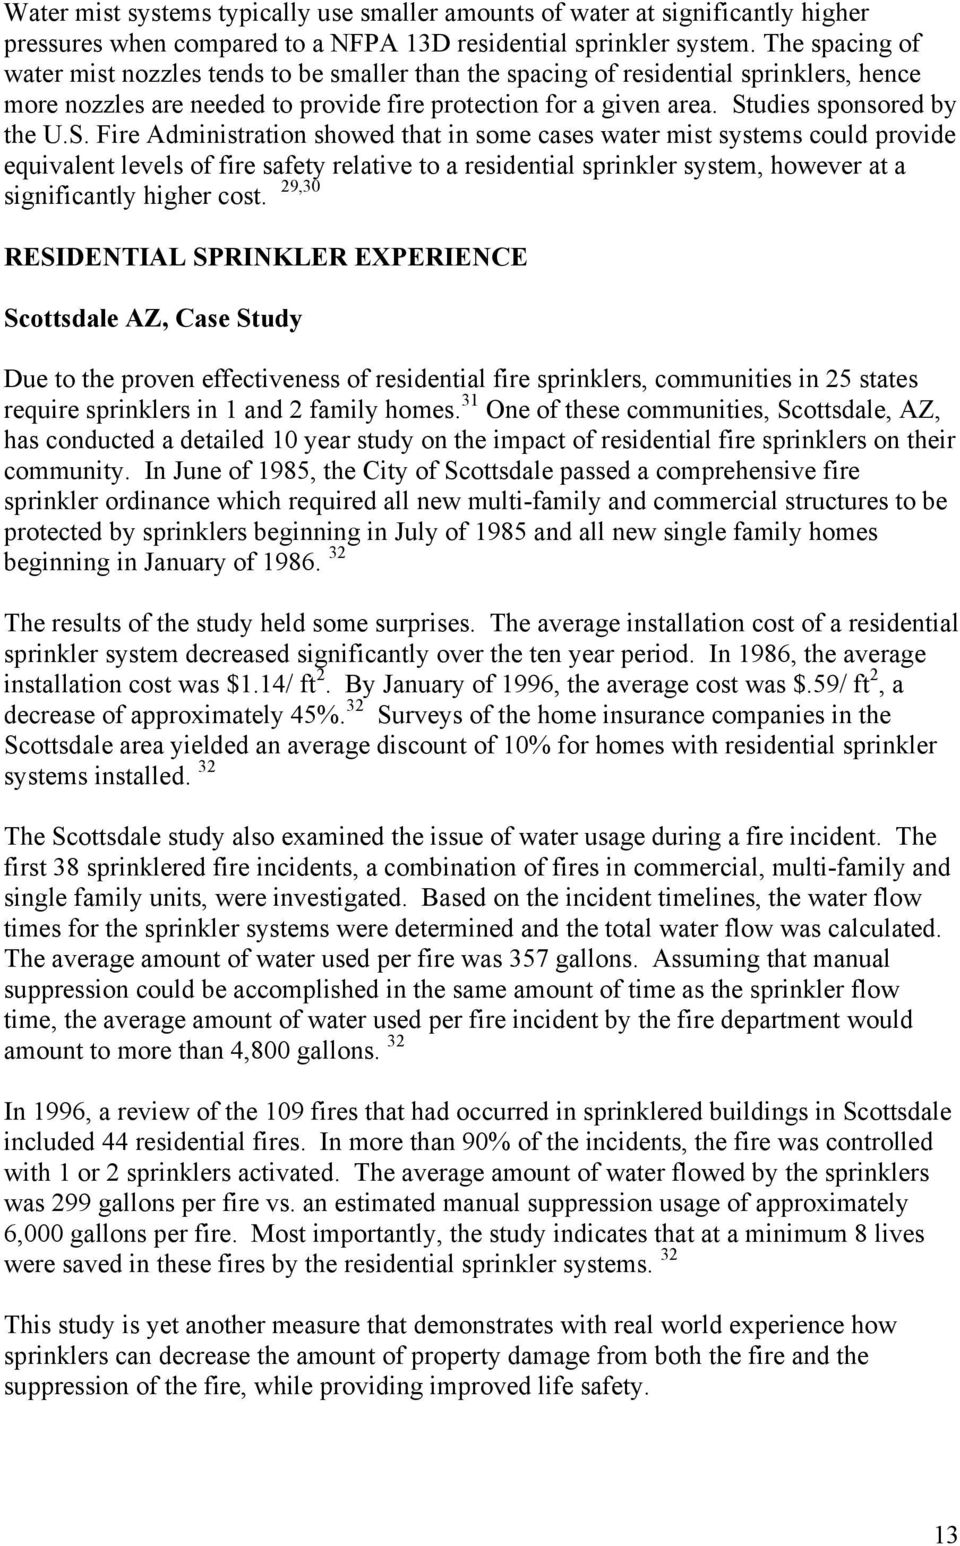 S. Fire Administration showed that in some cases water mist systems could provide equivalent levels of fire safety relative to a residential sprinkler system, however at a significantly higher cost.